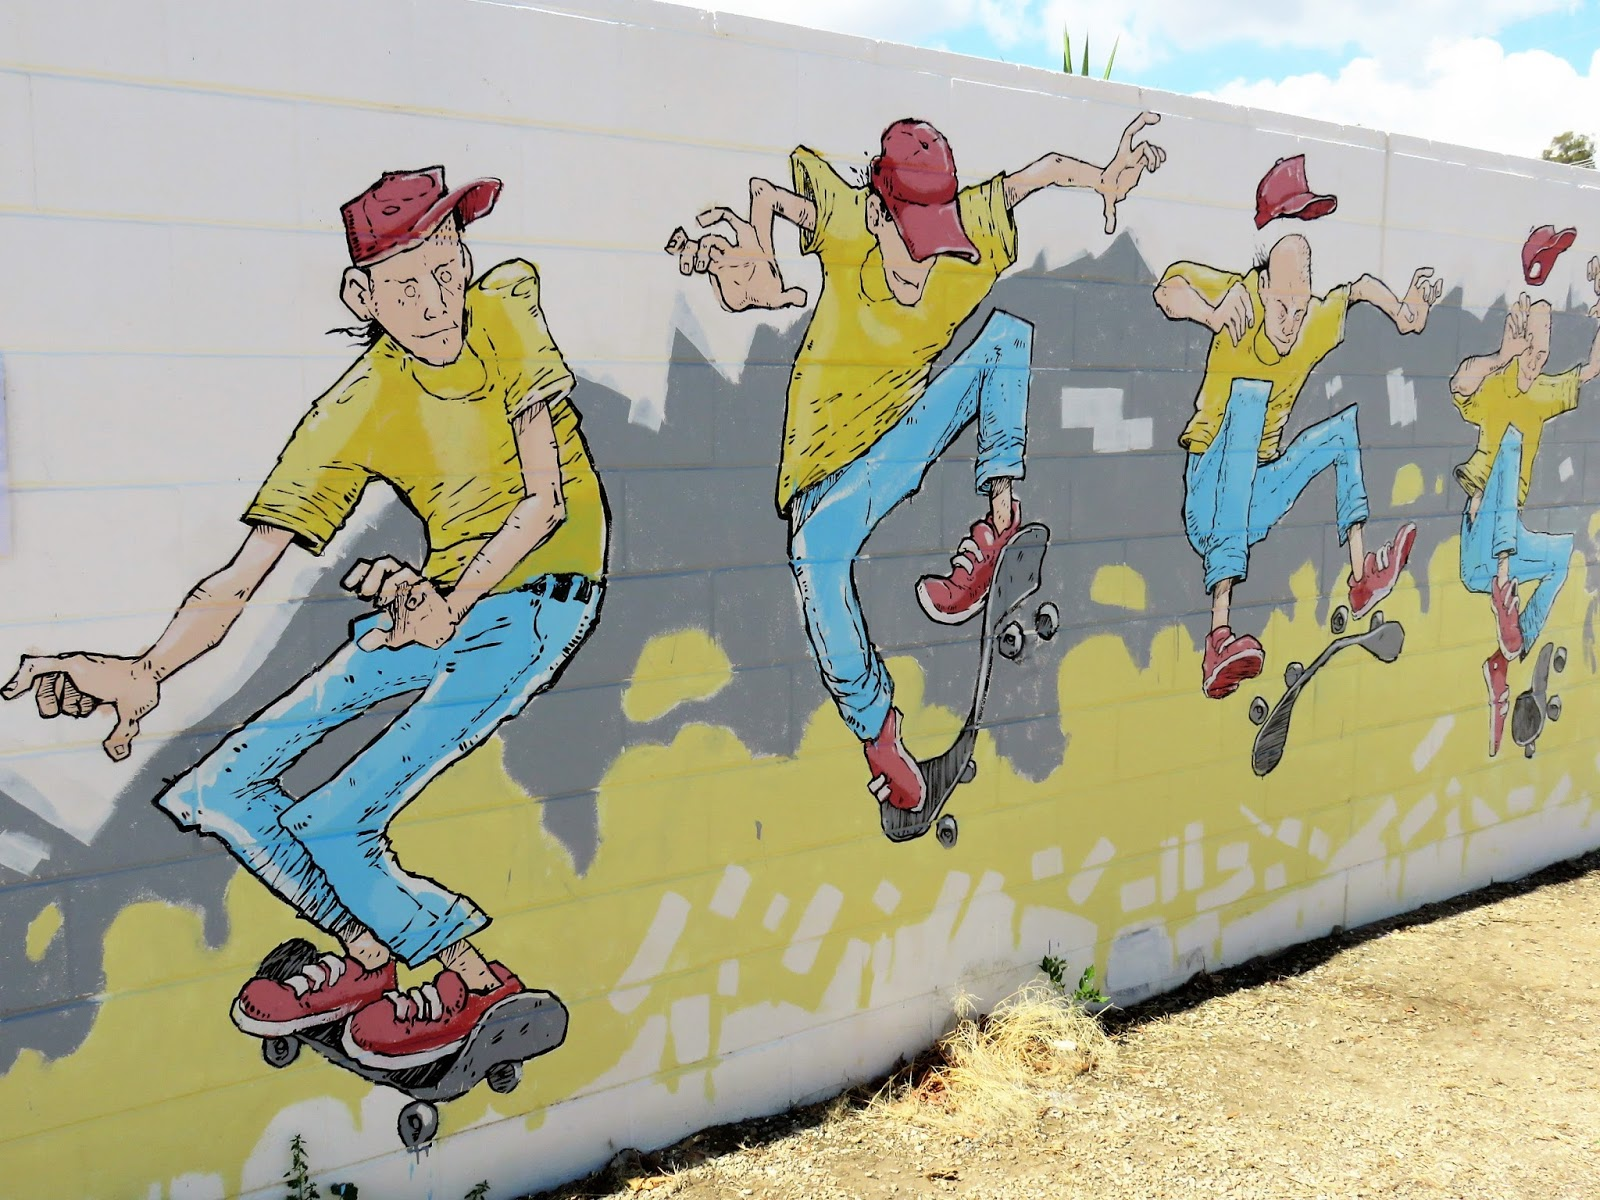 Villa Nuffka Views: The 2nd Benalla Wall to Wall Street Art Festival ...